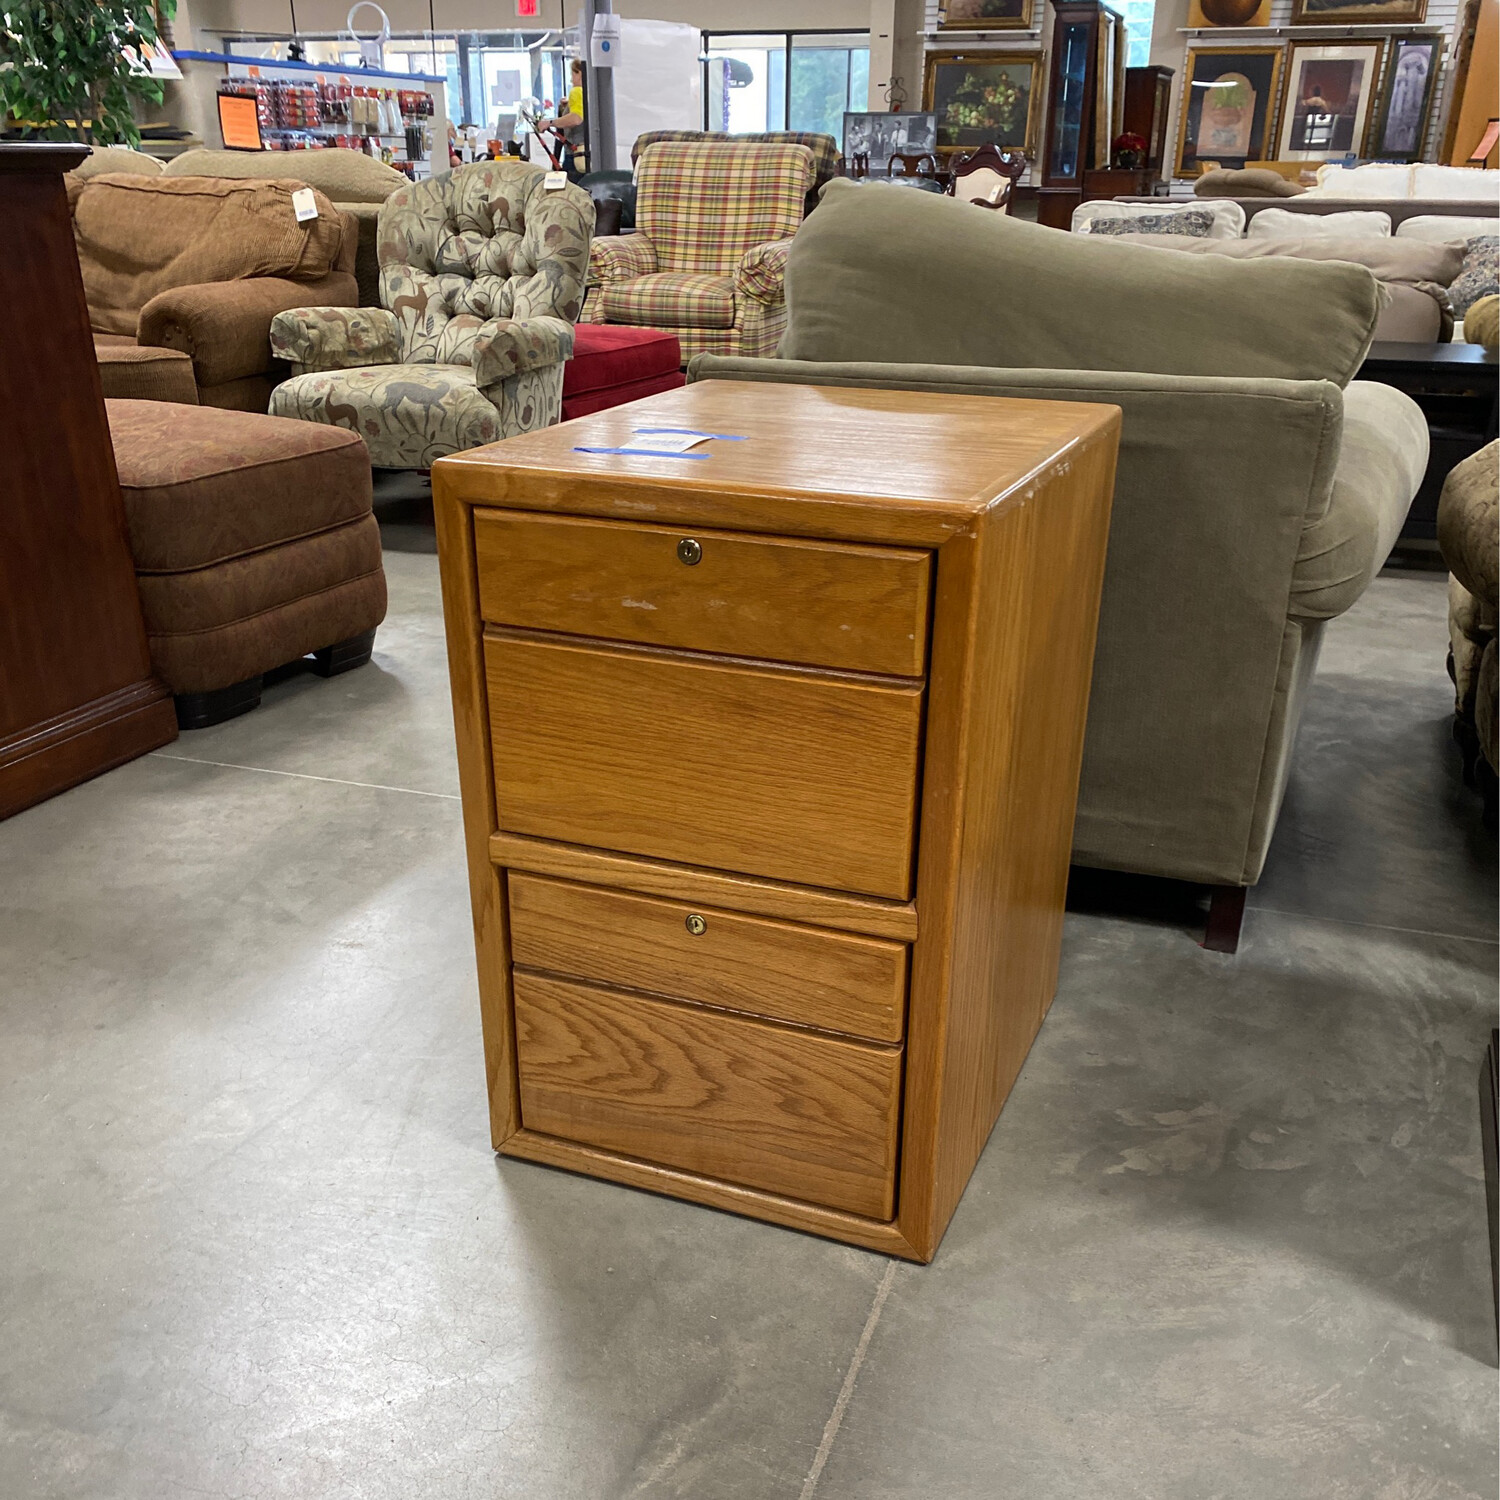 WOODEN FILING CABINET W/NO KEY